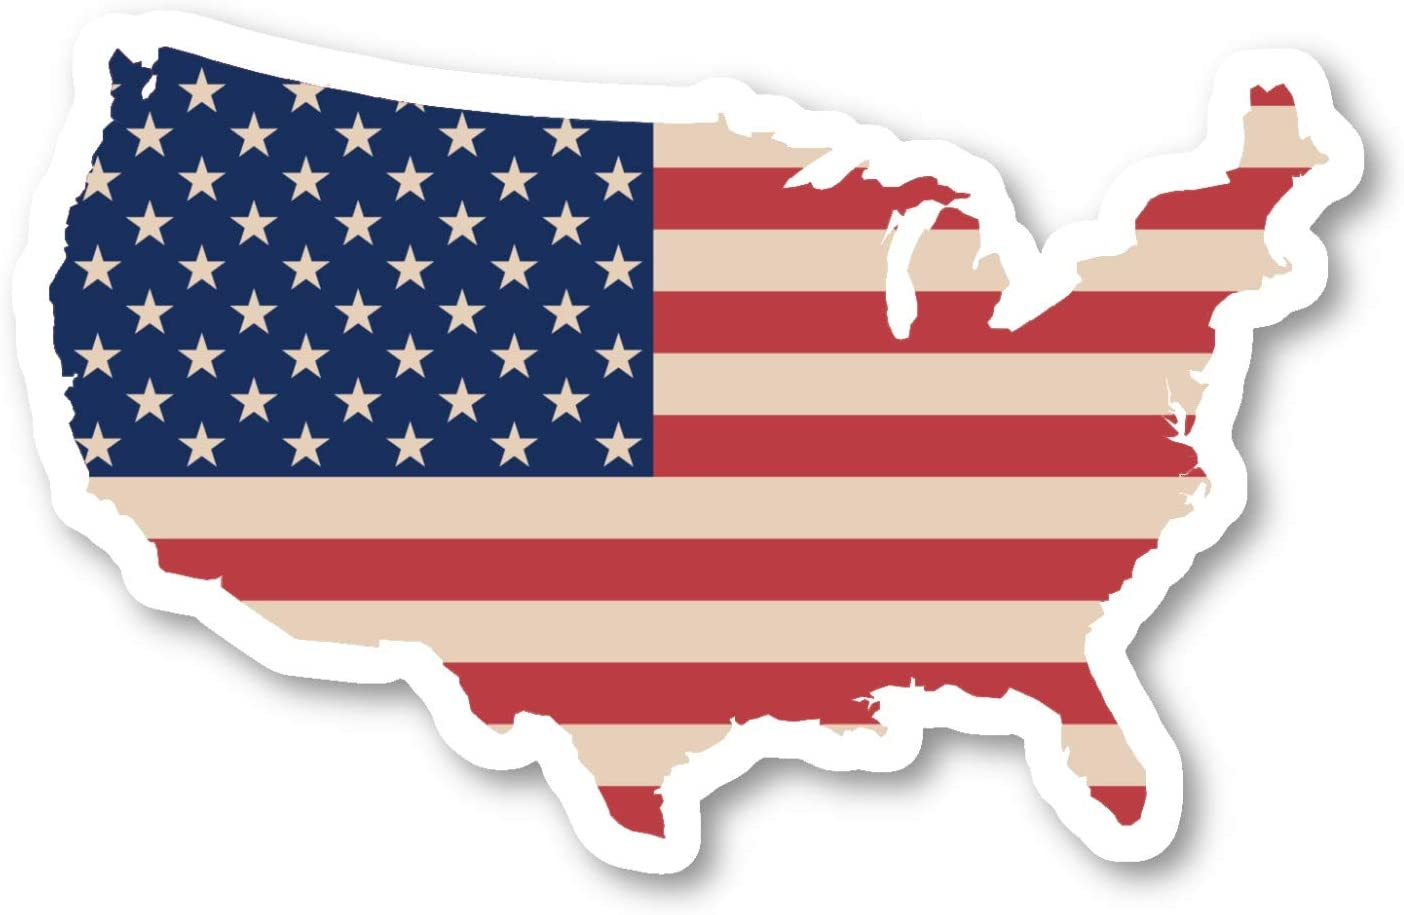 "USA United States Map Flag Sticker Flags Stickers - Laptop Stickers - 4"" Vinyl Decal - Laptop, Phone, Tablet Vinyl Decal Sticker S140781"